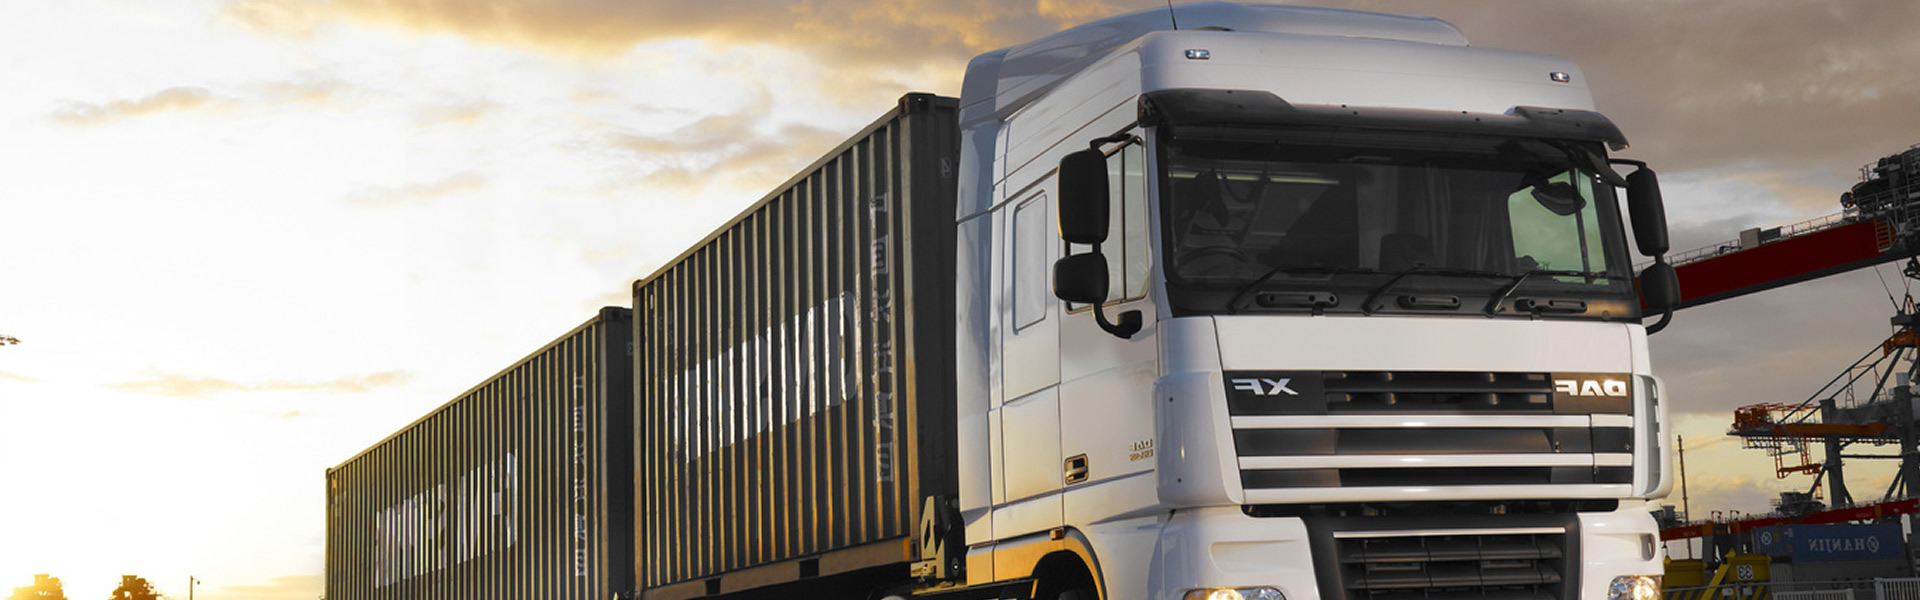 DOOR TO DOOR TRANSPORT SERVICES ACROSS EAST AFRICA